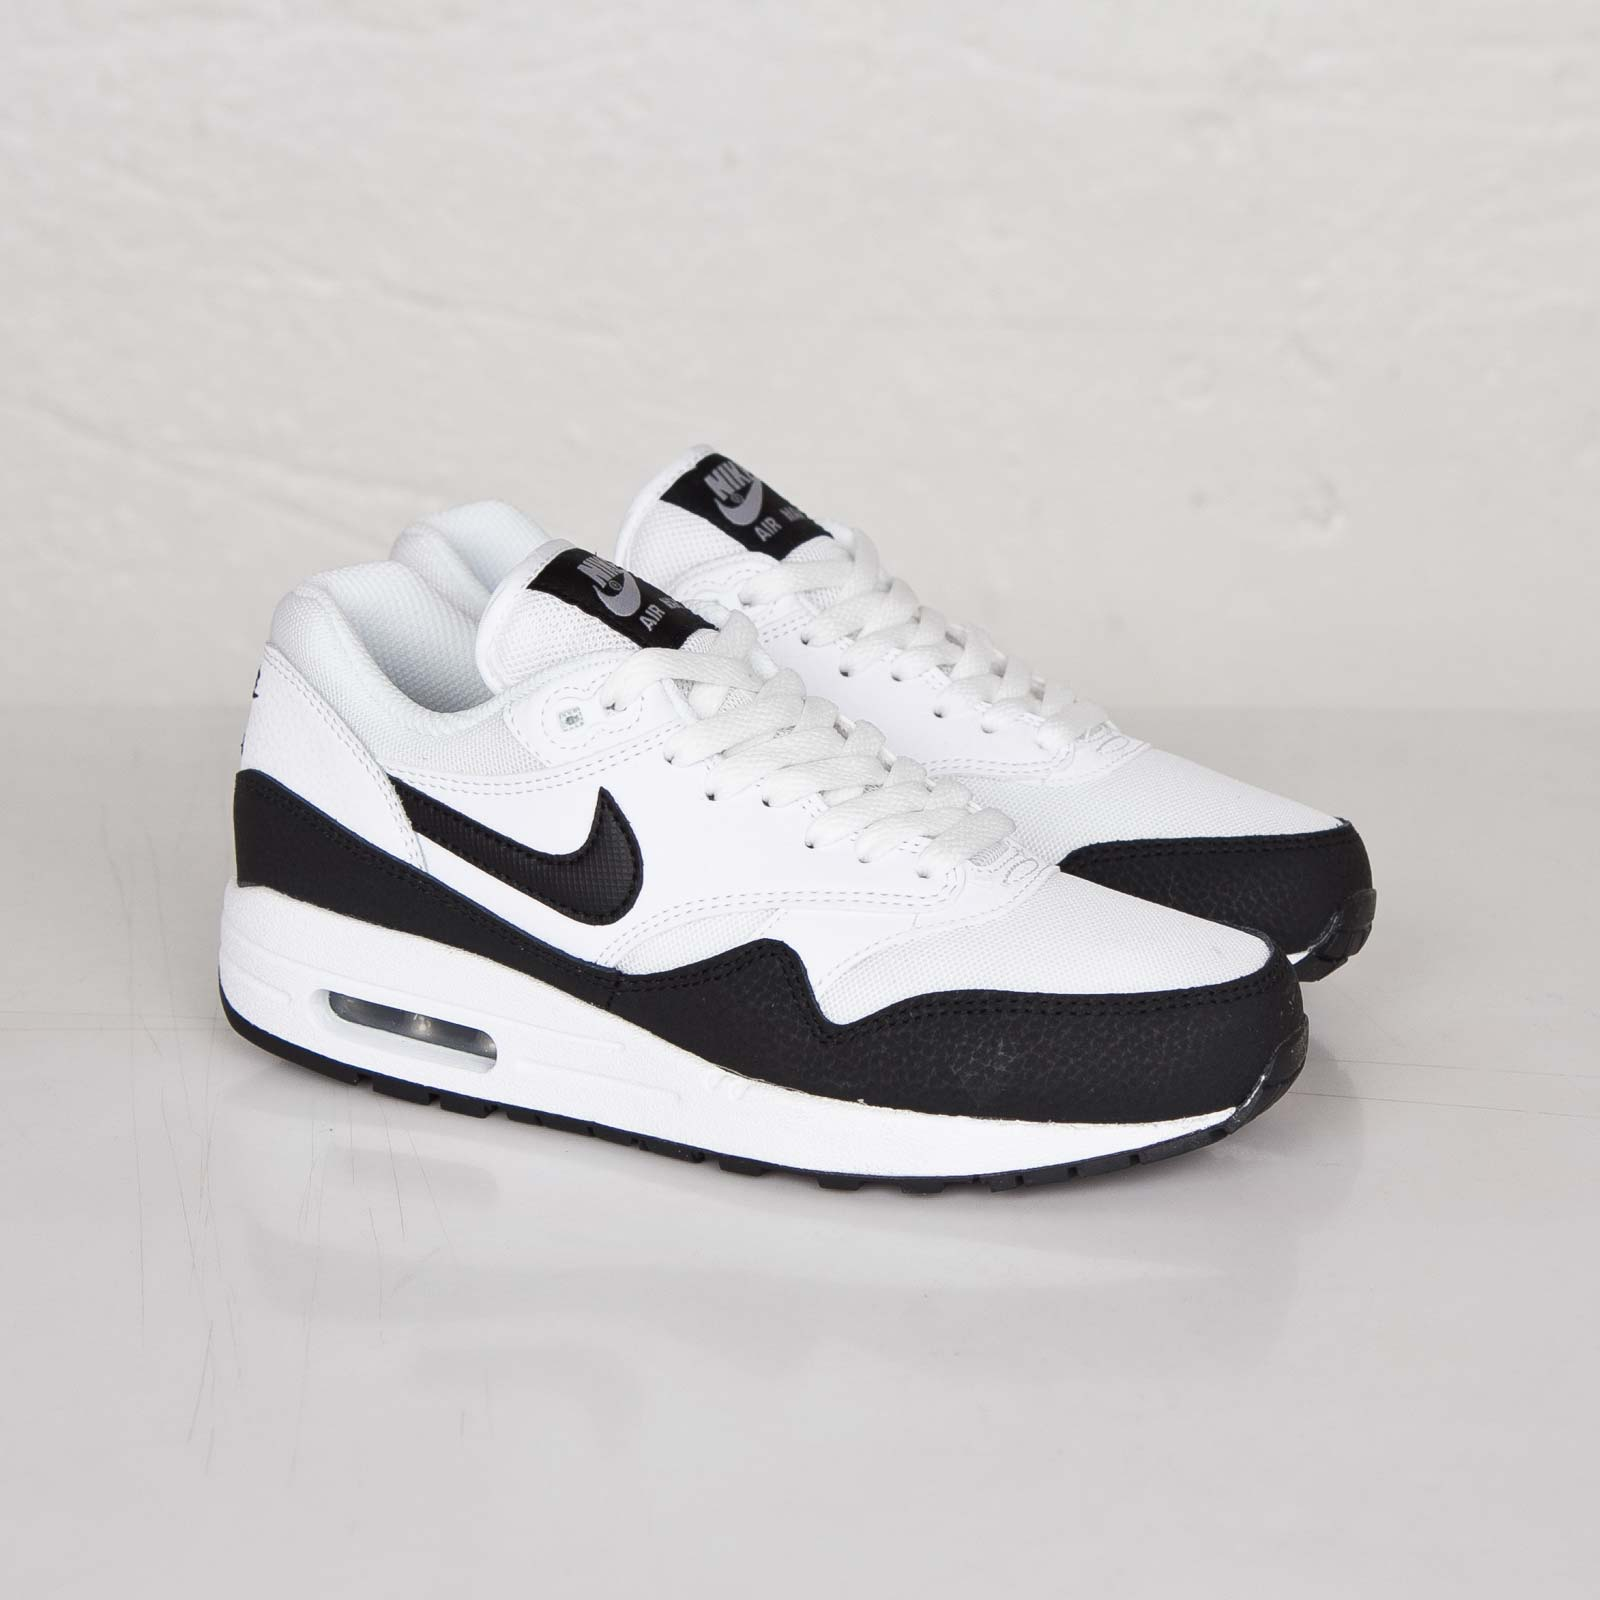 Nike Wmns Air Max 1 Essential 599820 115 Sneakersnstuff